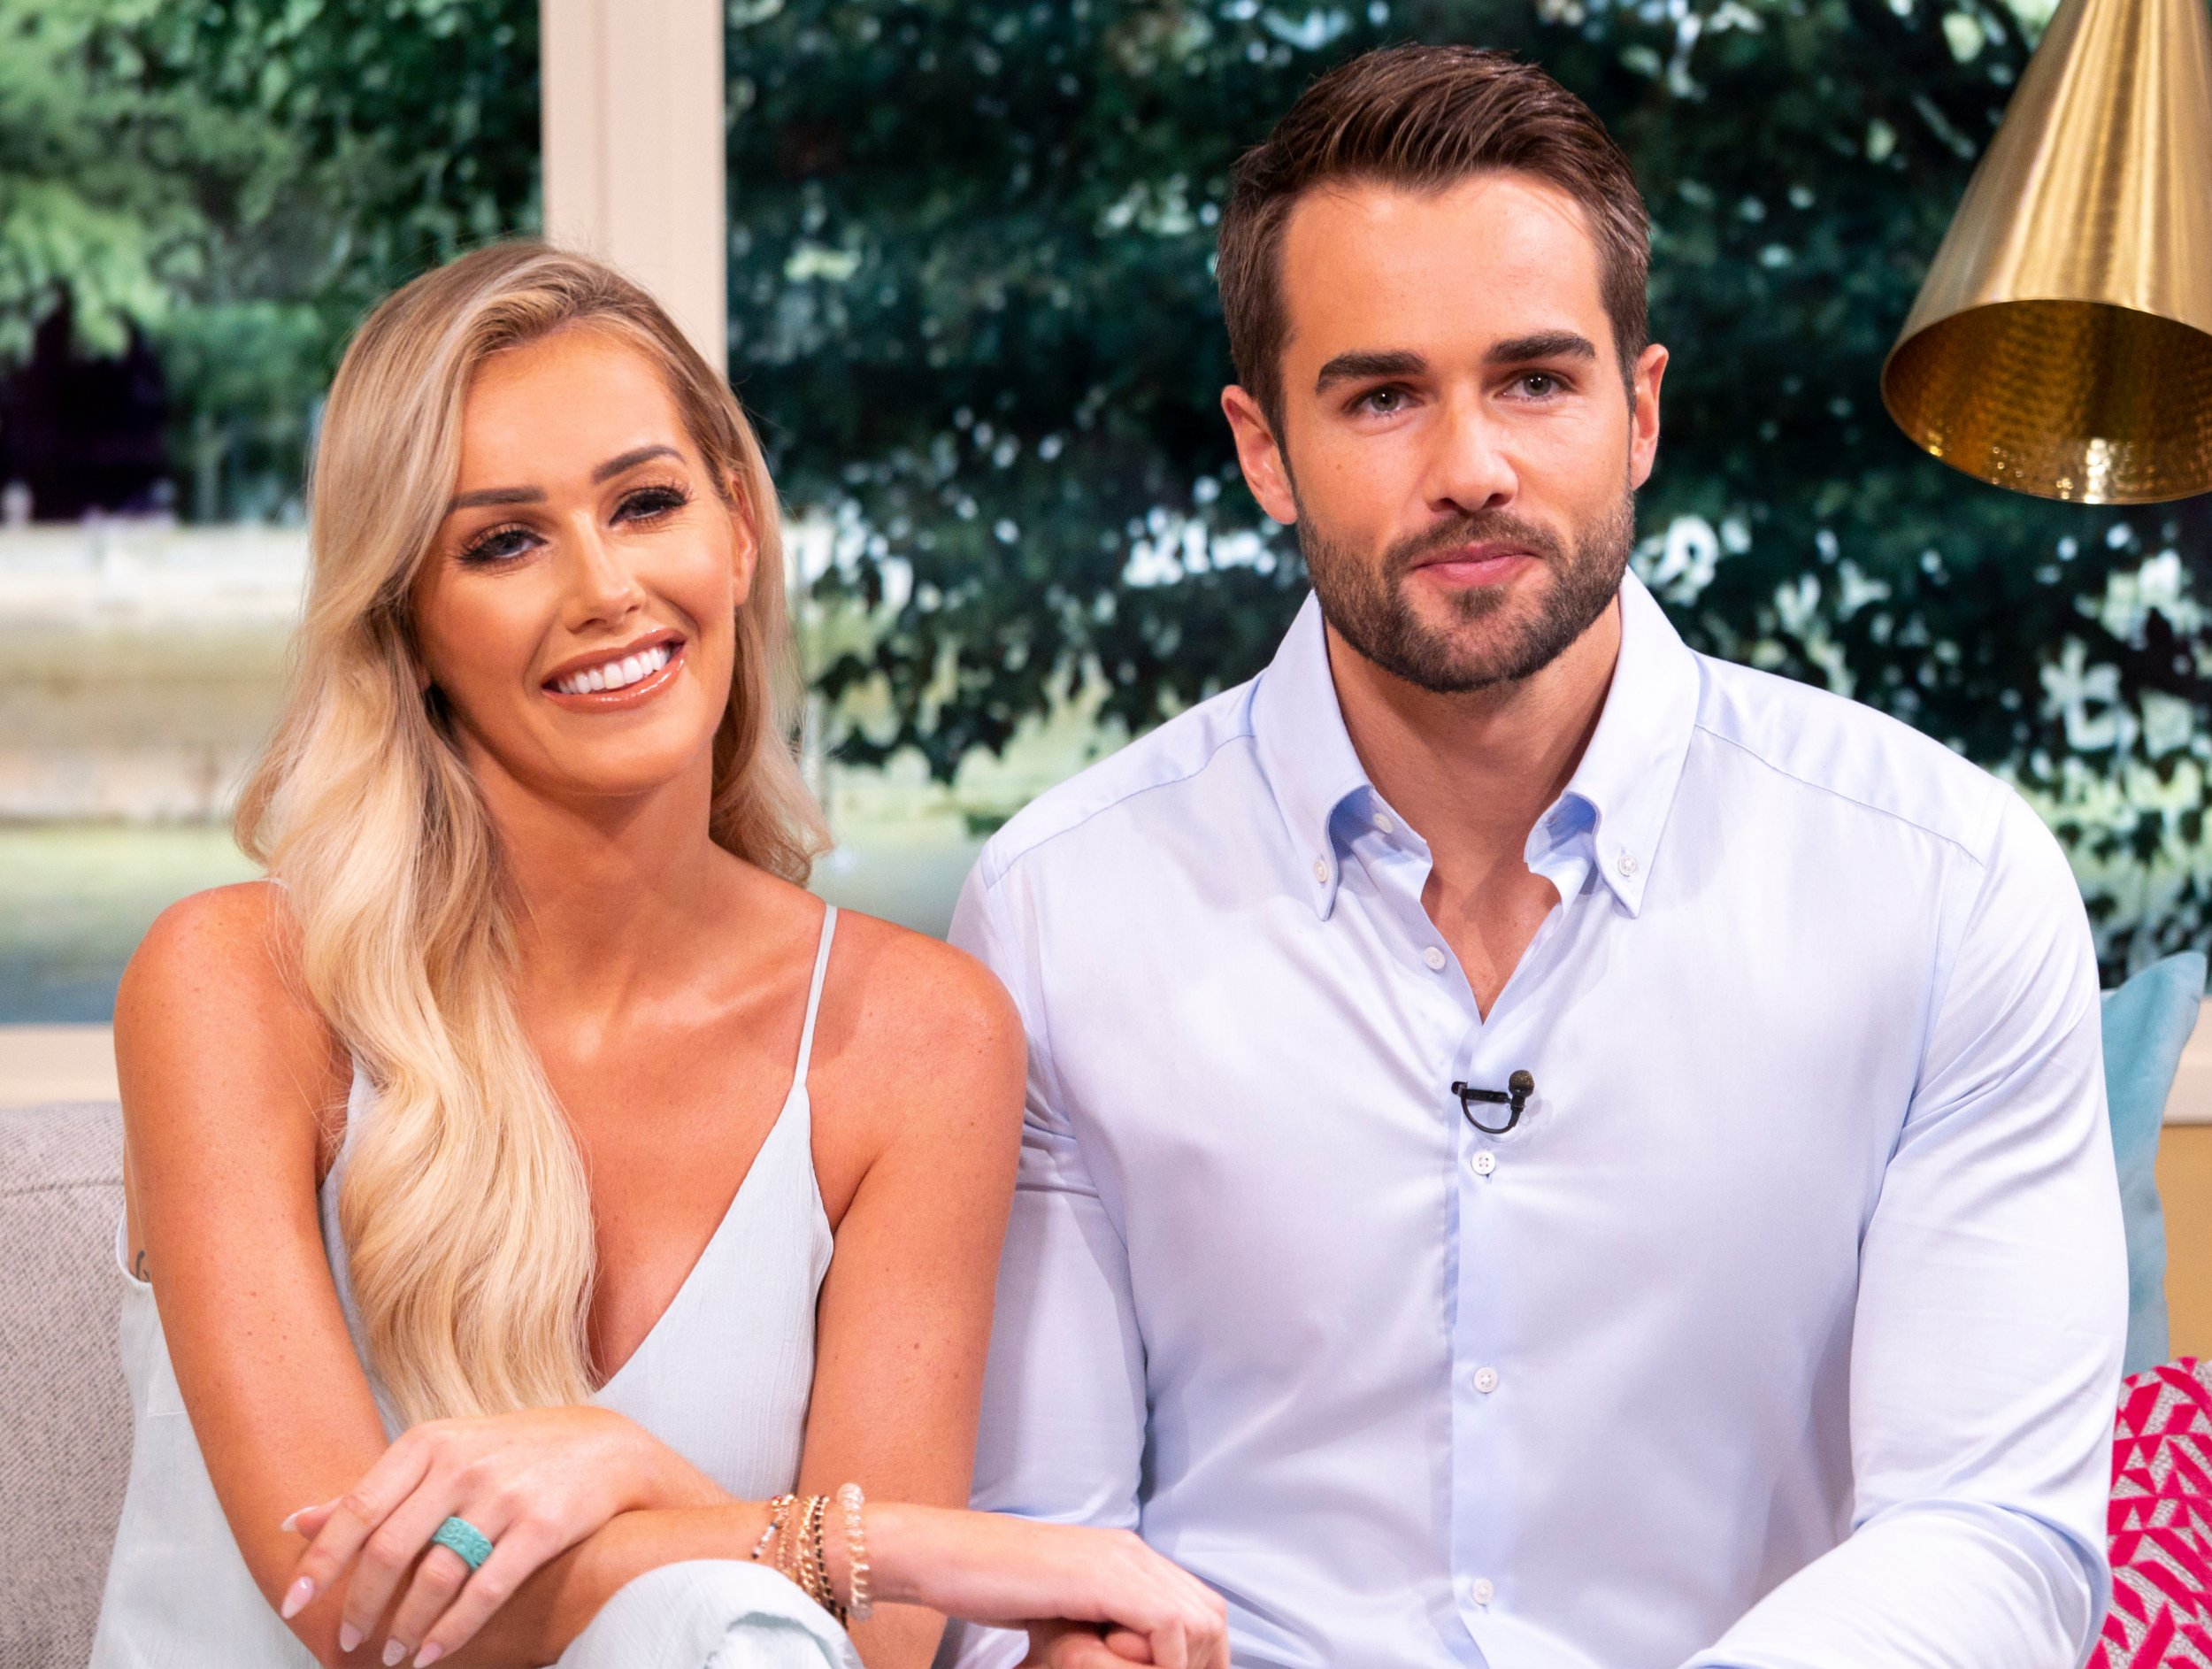 Love Island's Laura Anderson unfollows 'ex' Paul Knops on social media after couple 'split up'